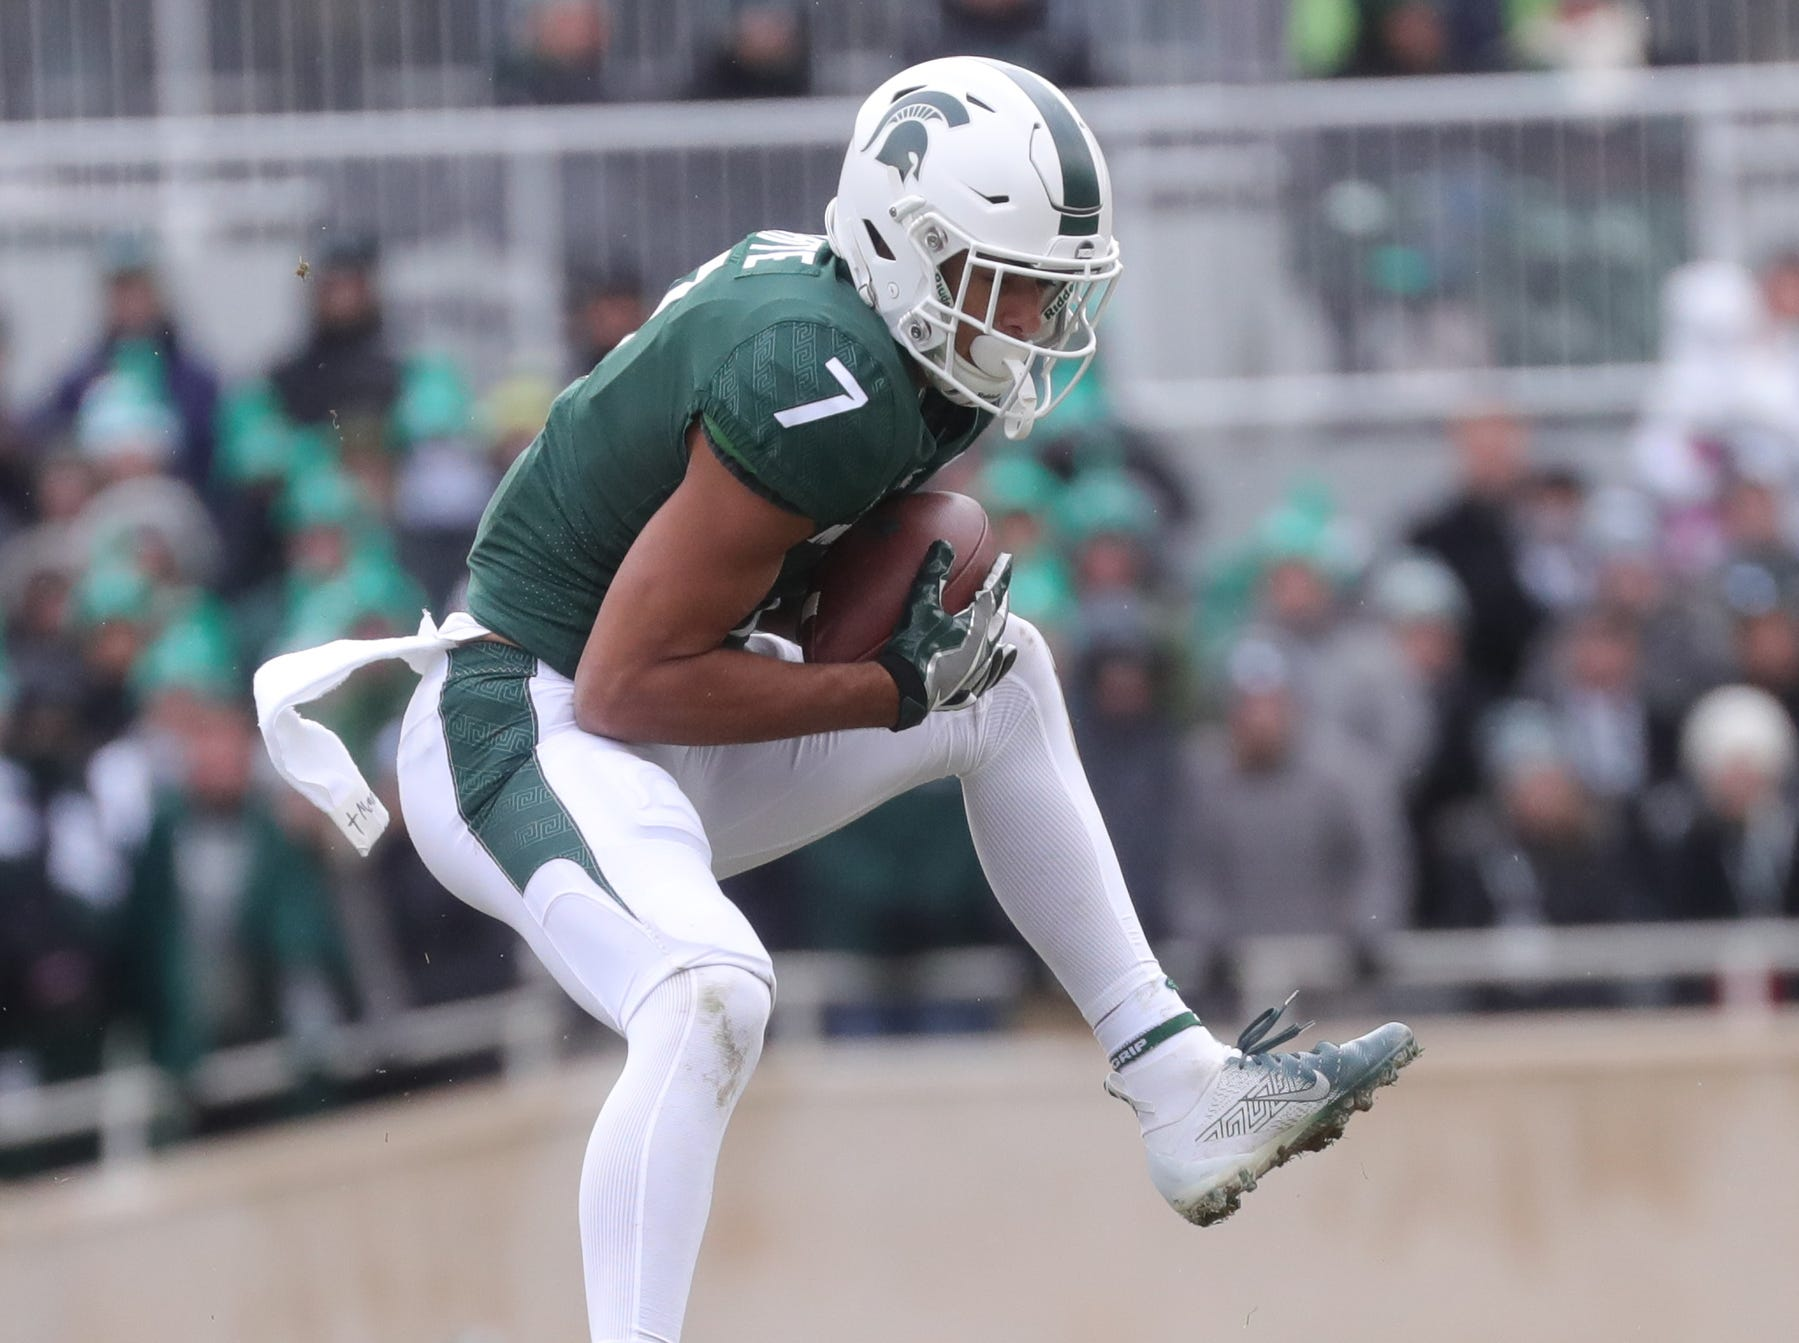 Michigan State football: Rate their performance vs. Ohio State